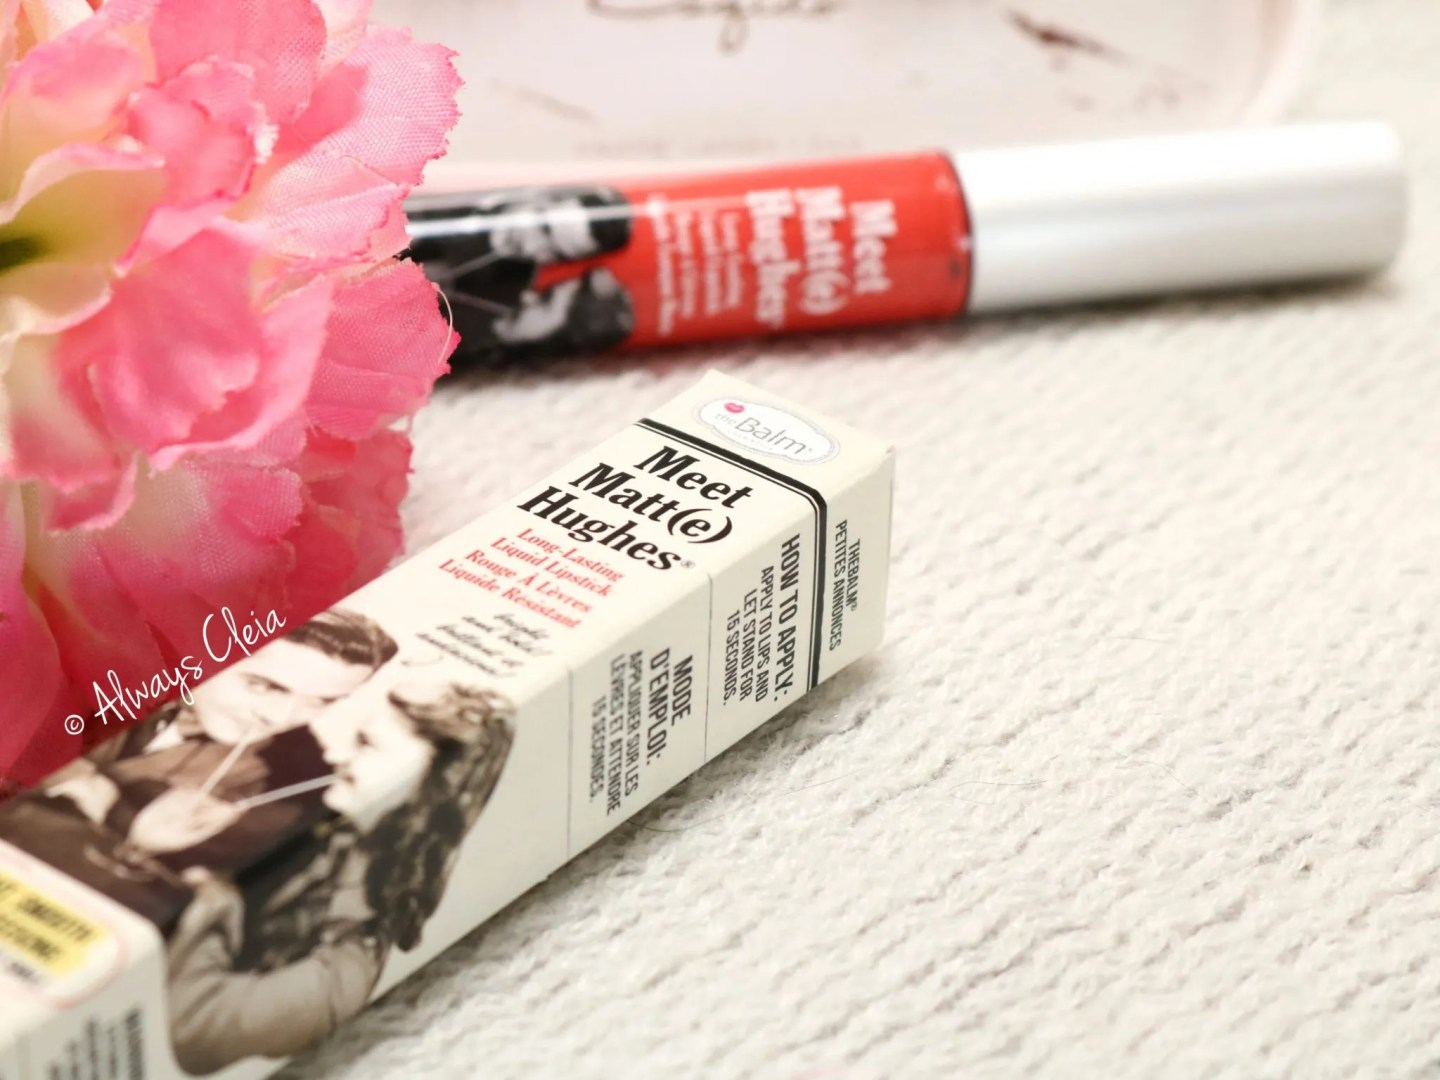 The Balm Honesty Lipstick